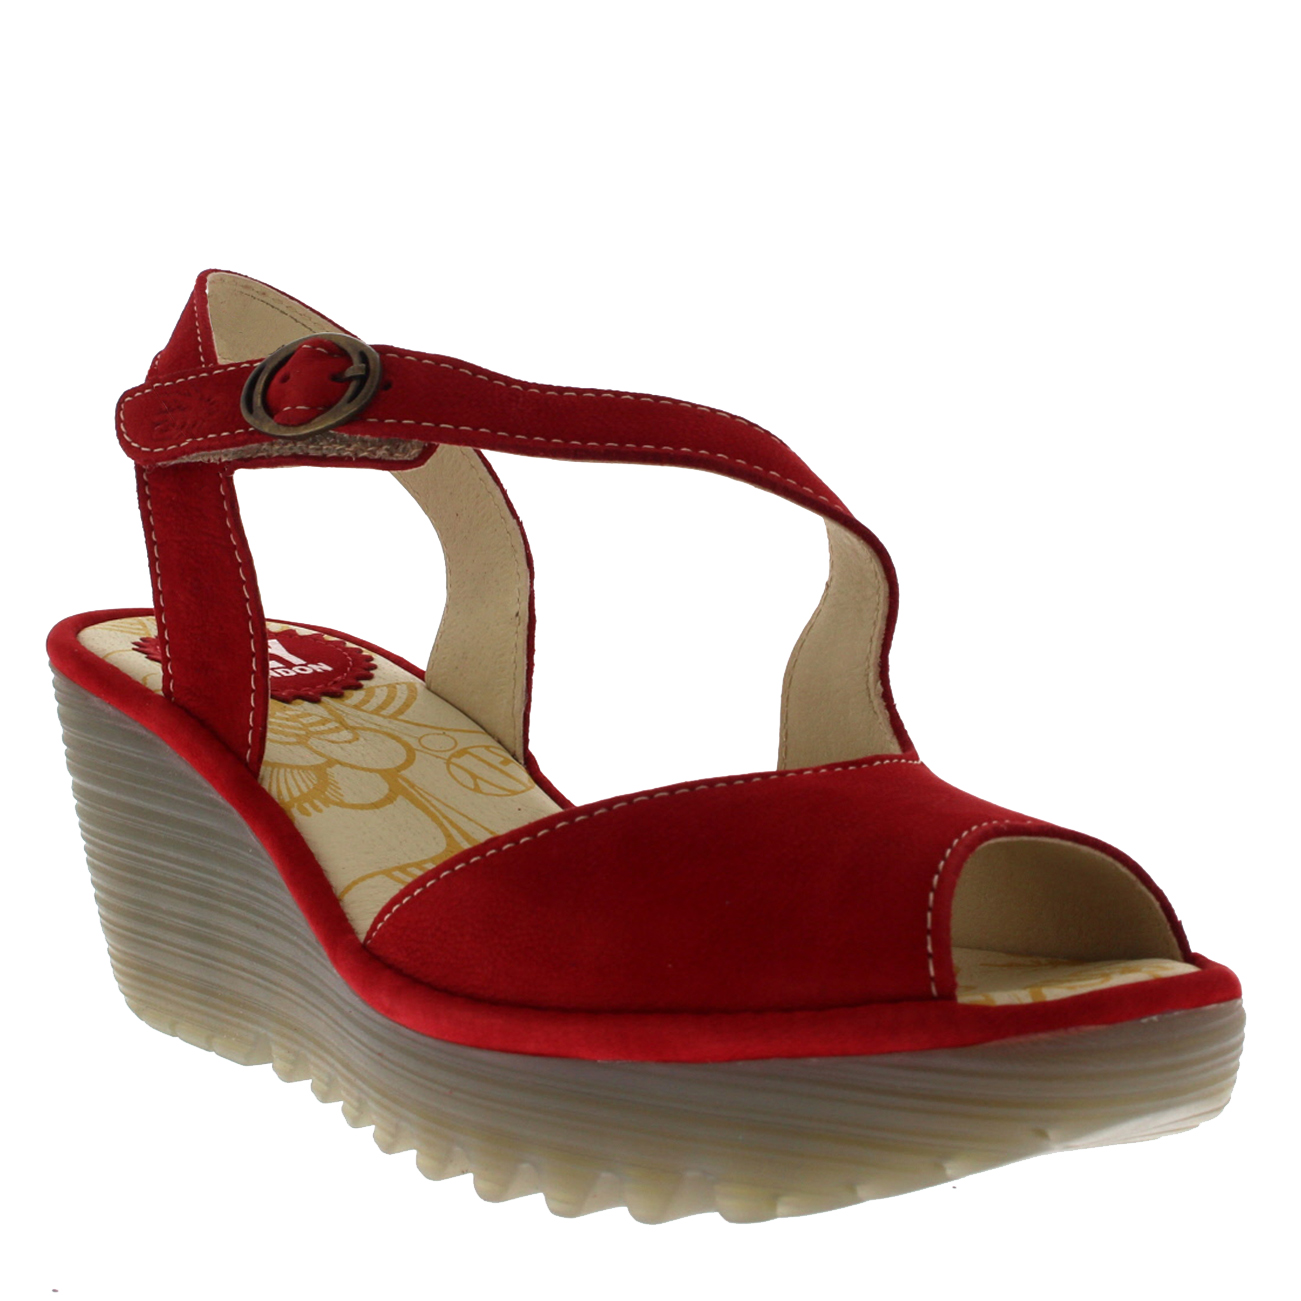 Womens-Fly-London-Yamp-Peep-Toe-Summer-Cut-Out-Buckle-Wedge-Heel-Sandals-US-5-12 thumbnail 16